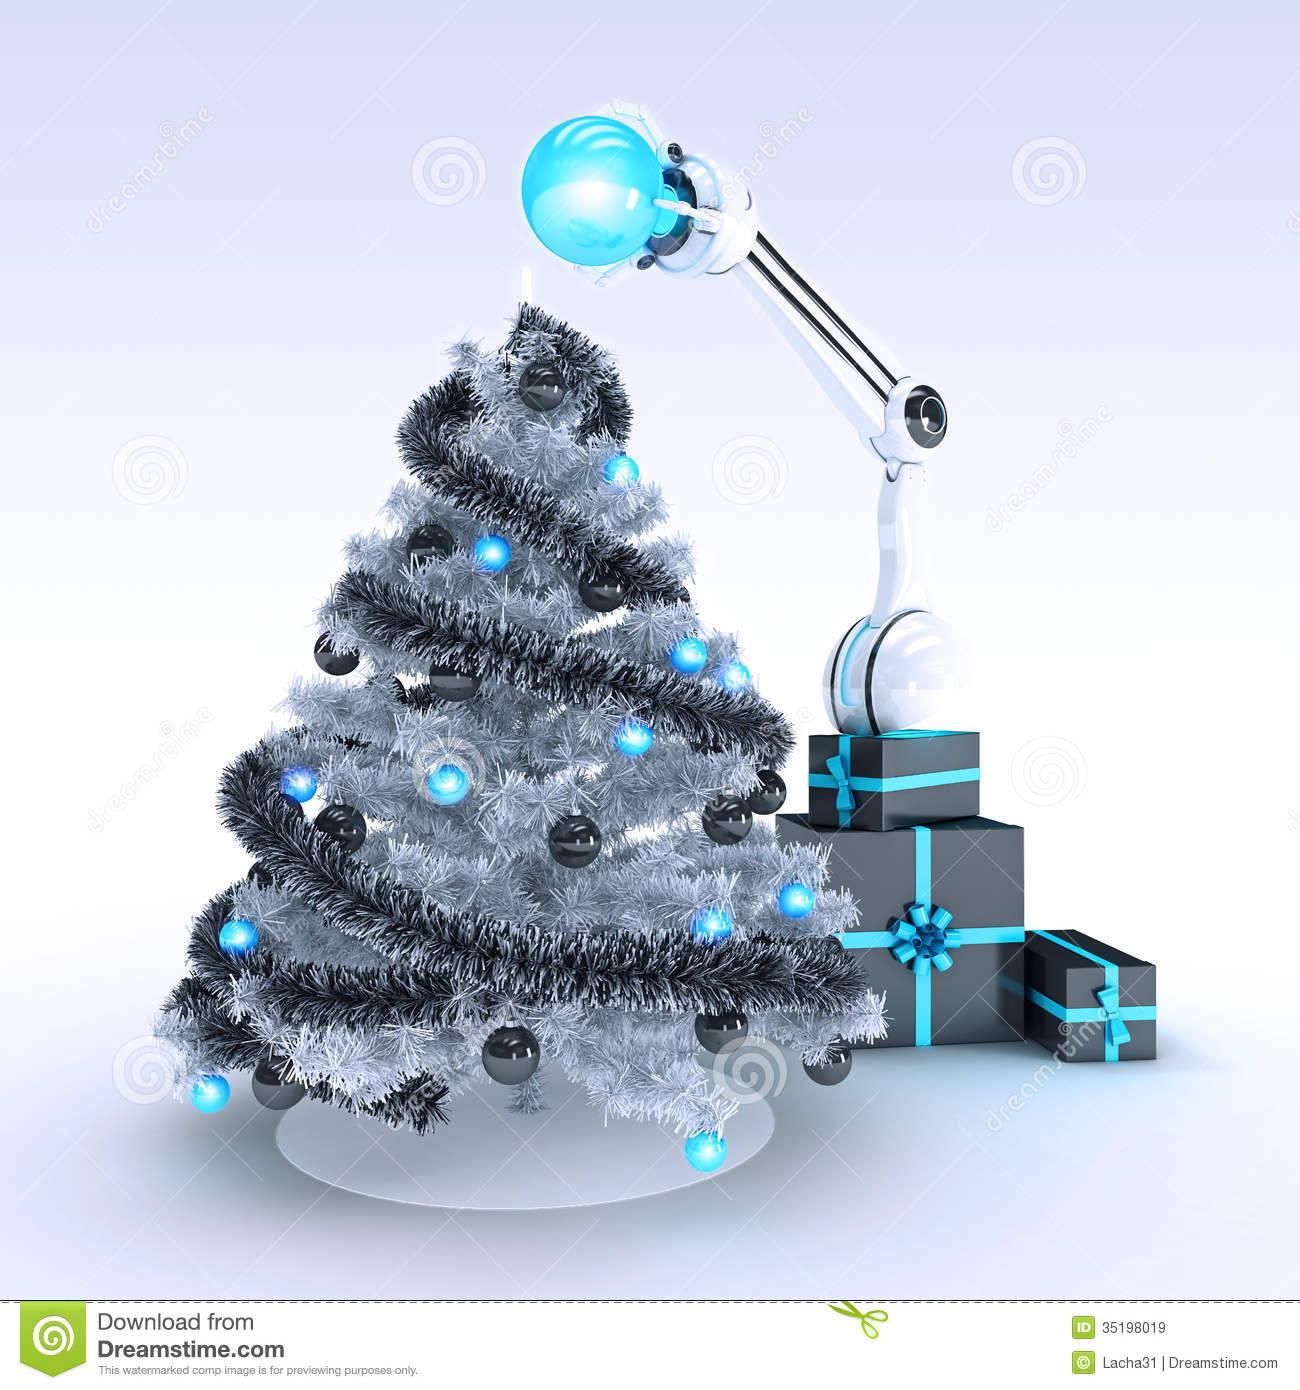 Robot And Christmas Tree Royalty Free Stock Images - Image: 35198019